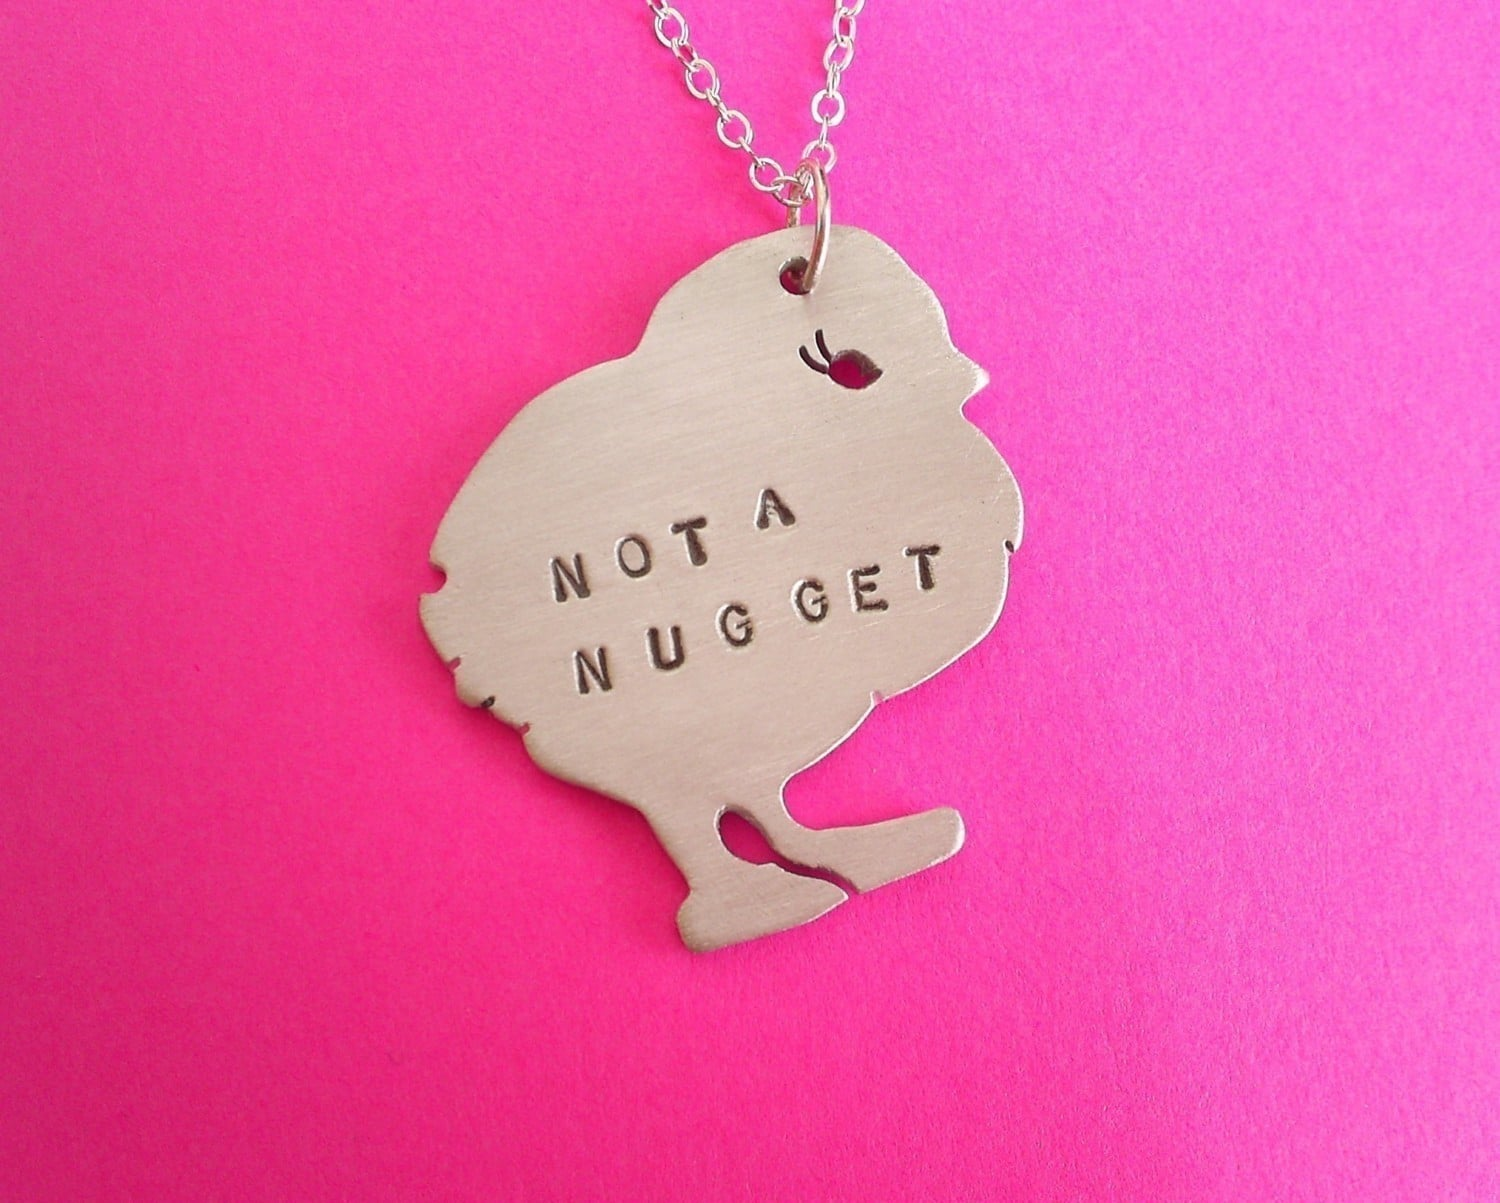 Not Your Nugget